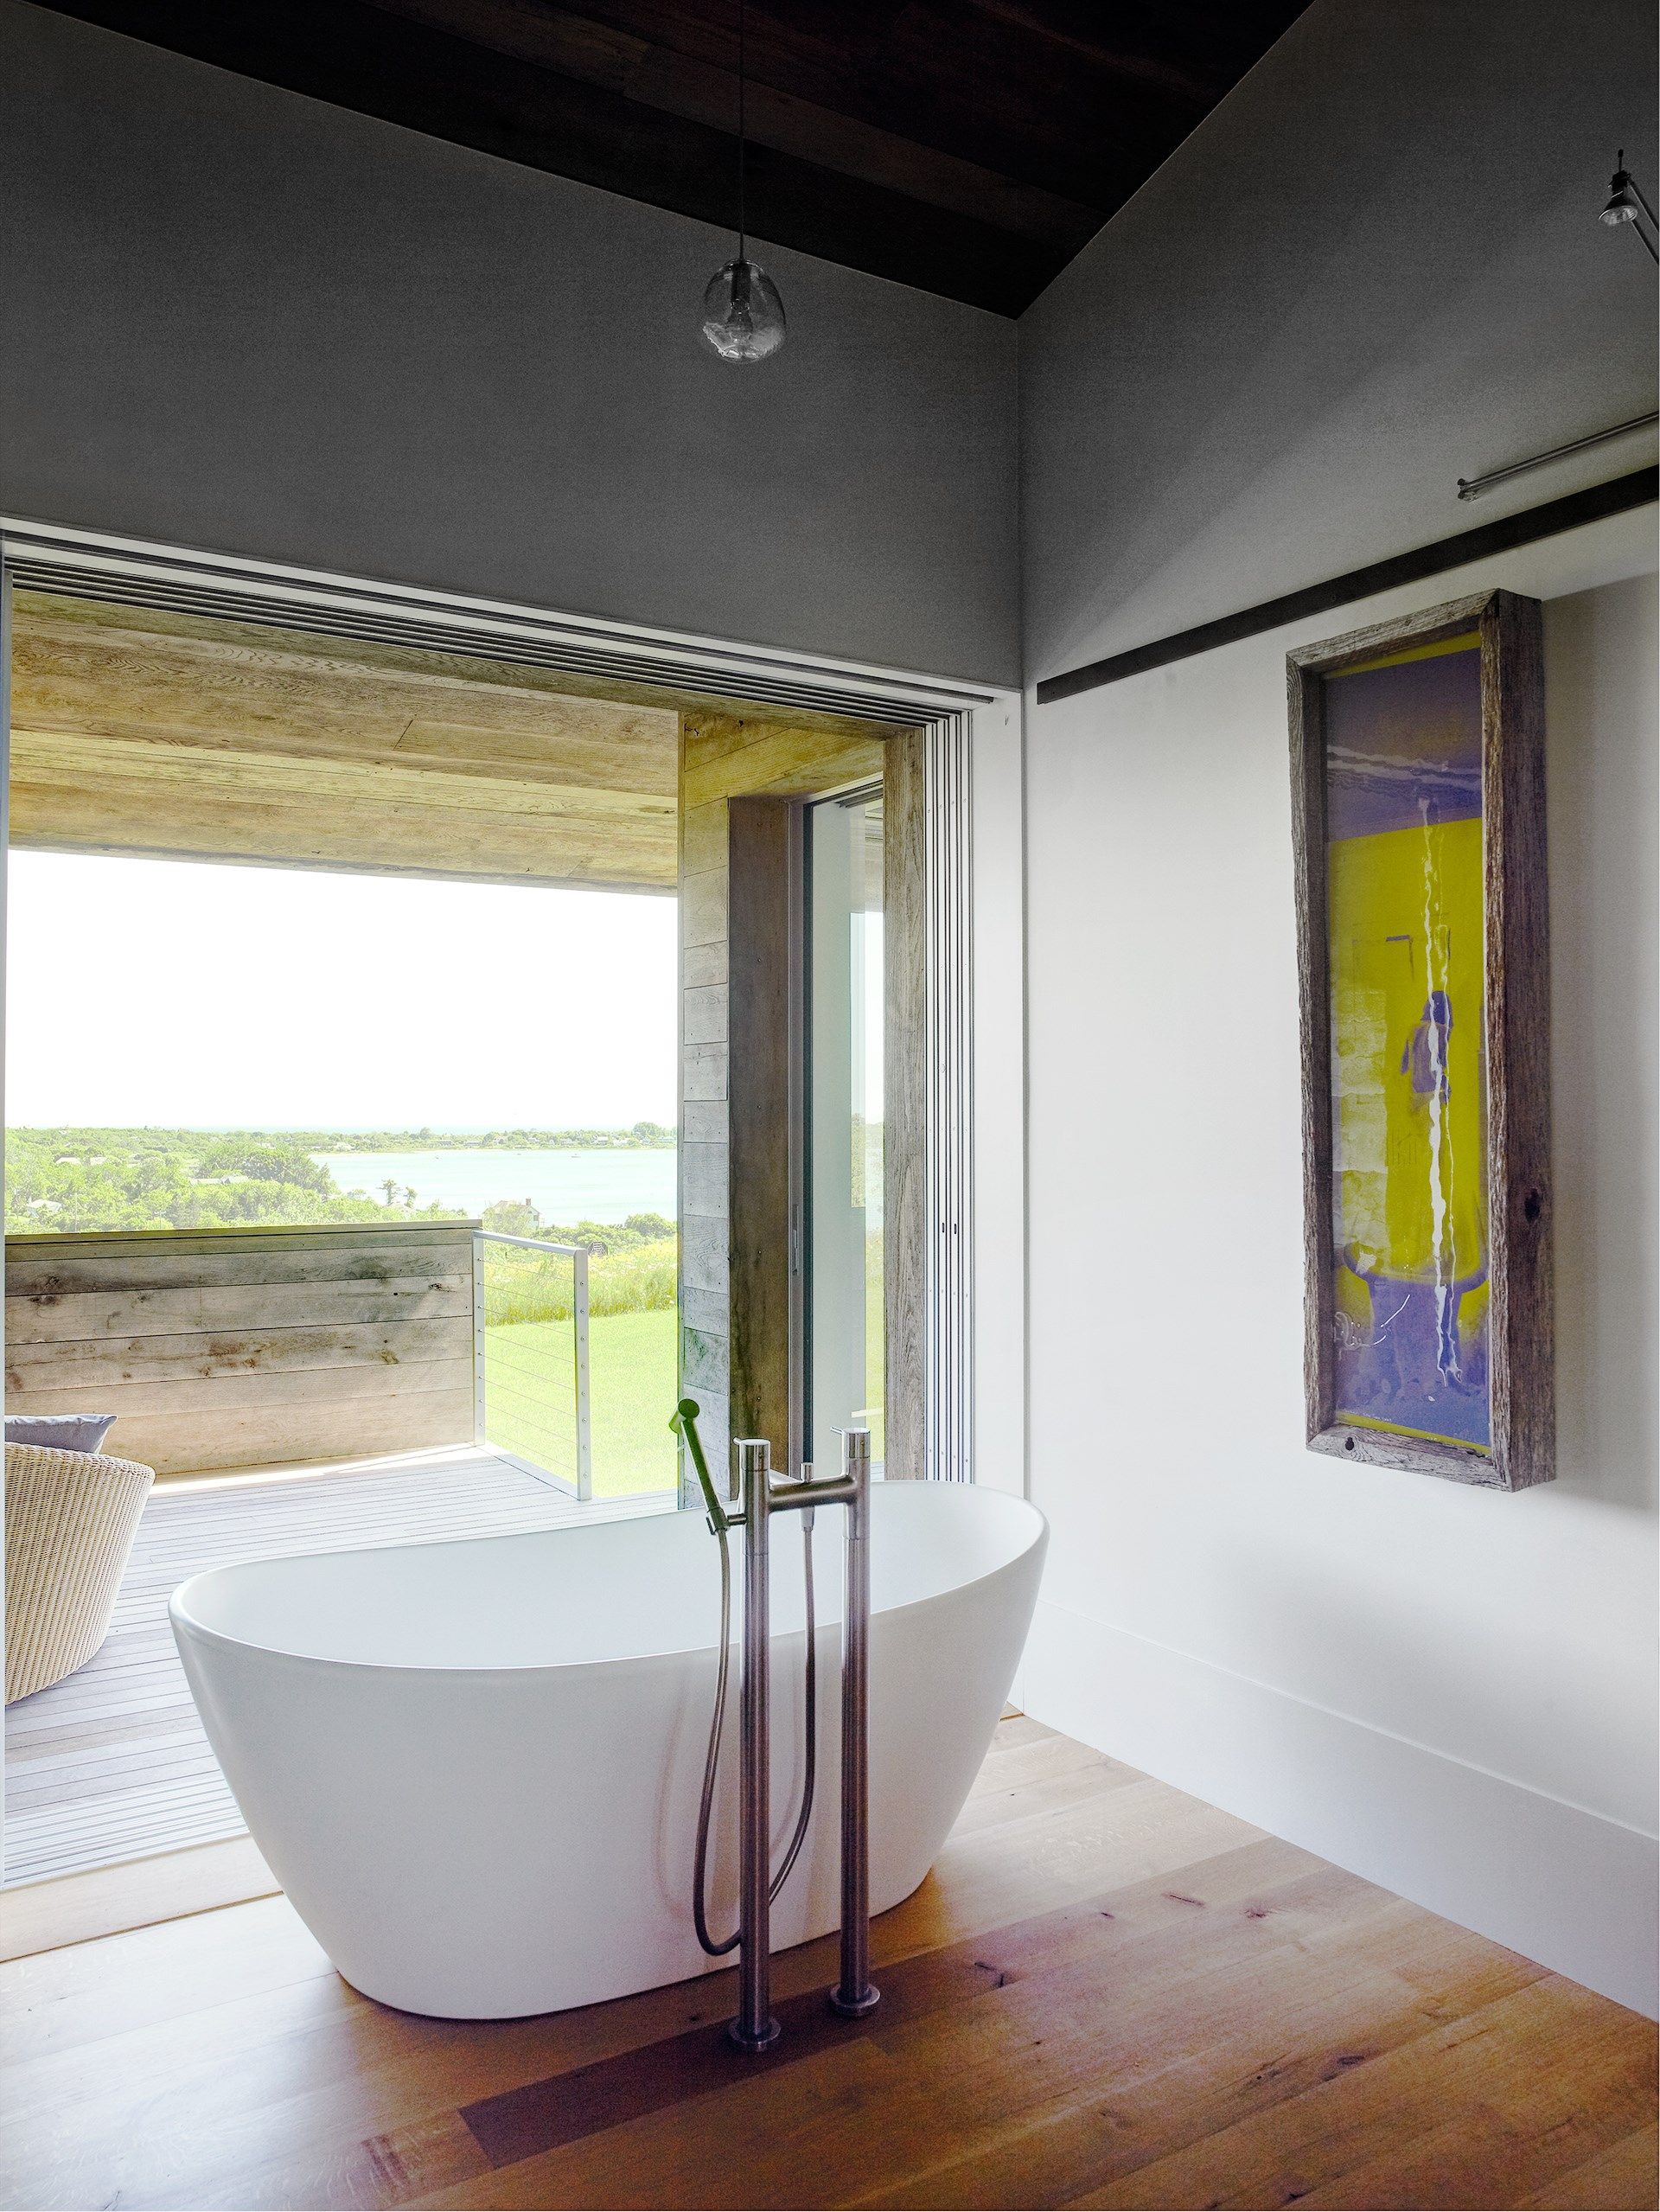 "This luxurious bathroom in a [Montauk holiday home](https://www.homestolove.com.au/luxury-montauk-house-by-bates-masi-architects-4473|target=""_blank"") opens out onto its own private deck. Hills and the waters of Lake Montauk are visible in the distance. *Photo: Richard Powers / Story: Belle*"